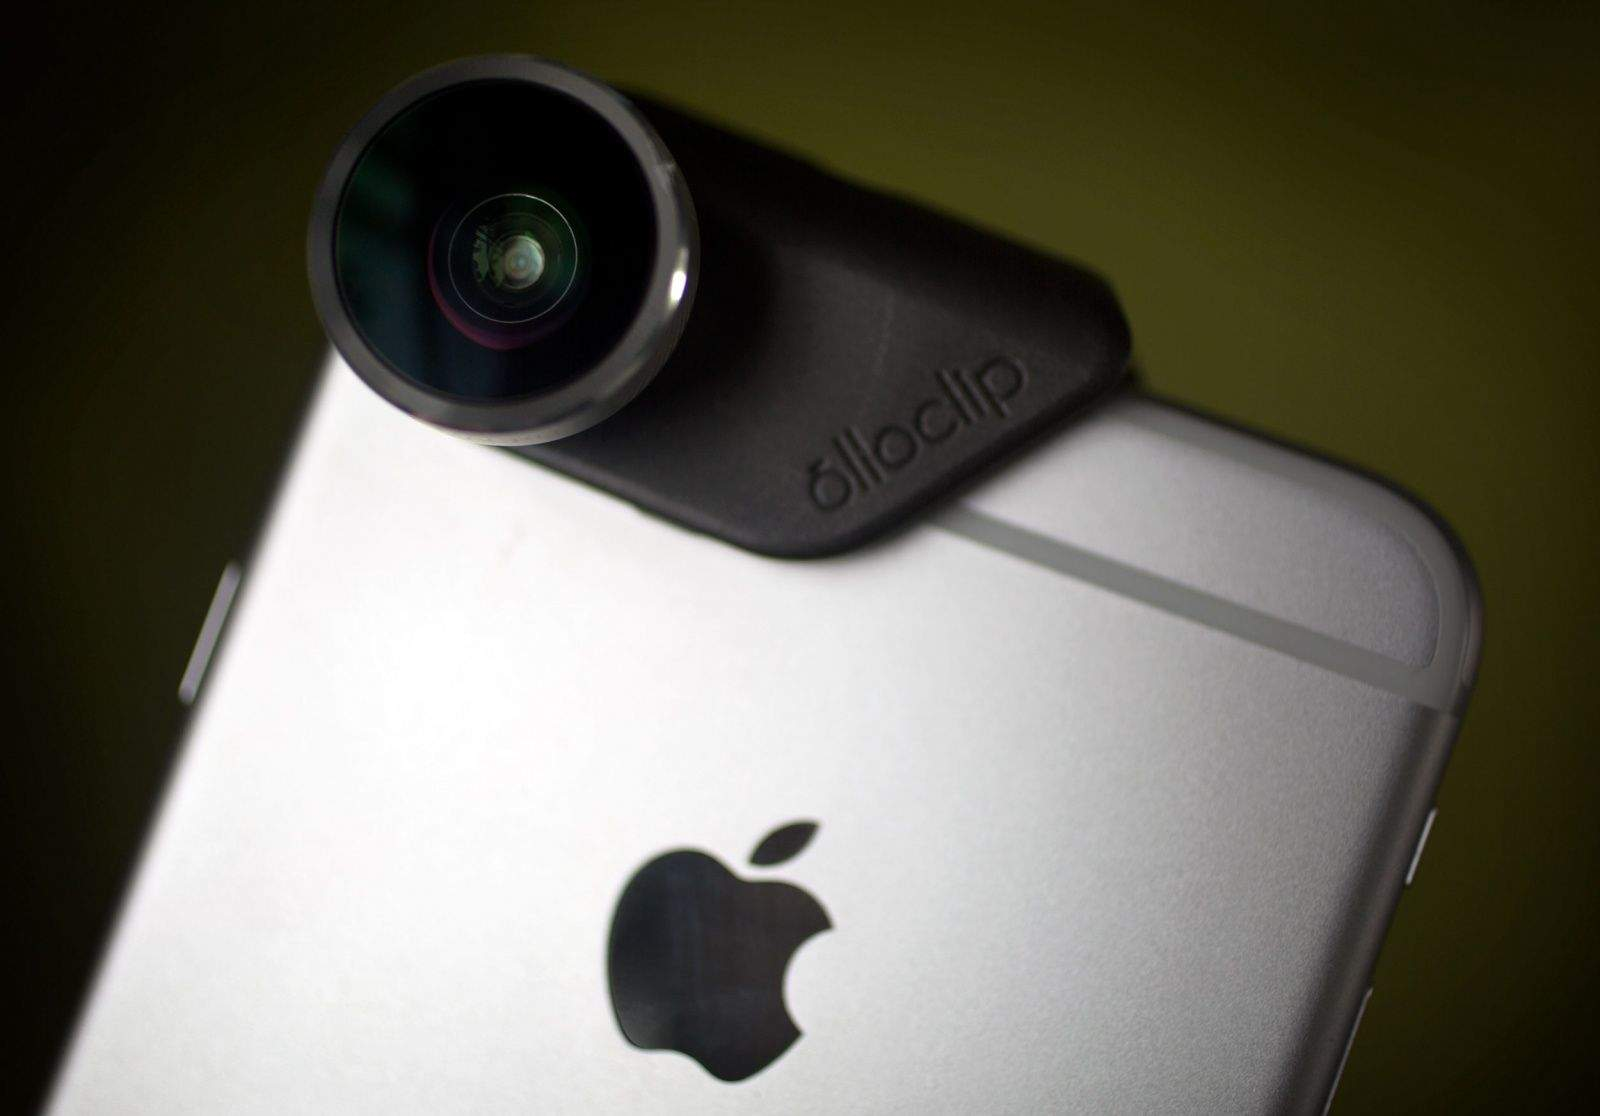 Olloclip vs. Moment lenses: Best glass for your iPhone 6 camera ...